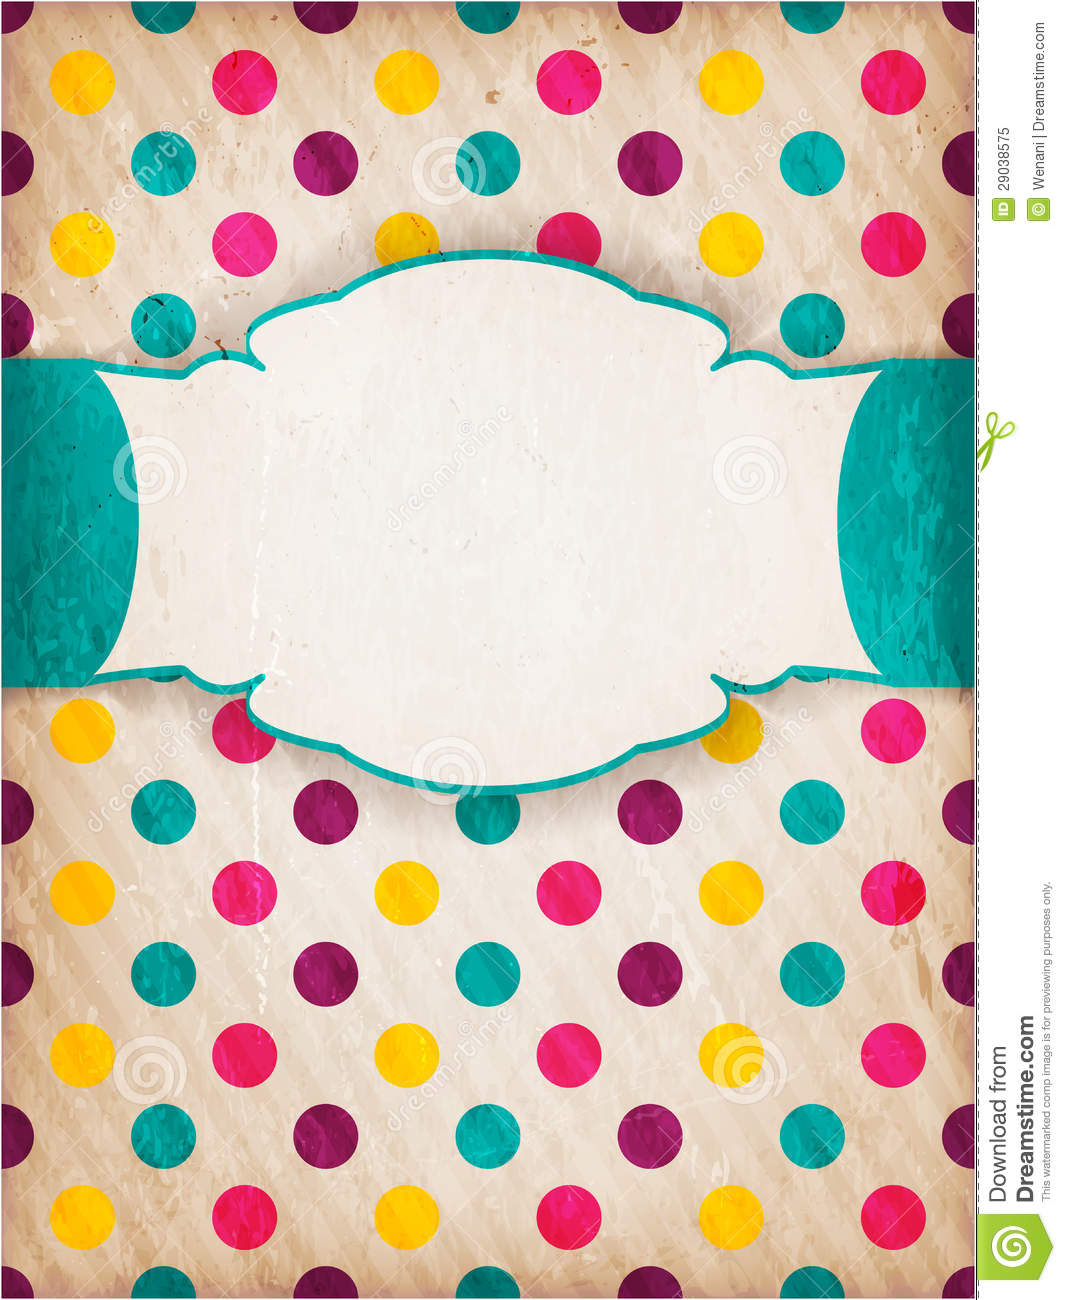 Baby Shower Invitation Backgrounds Free for great invitations example